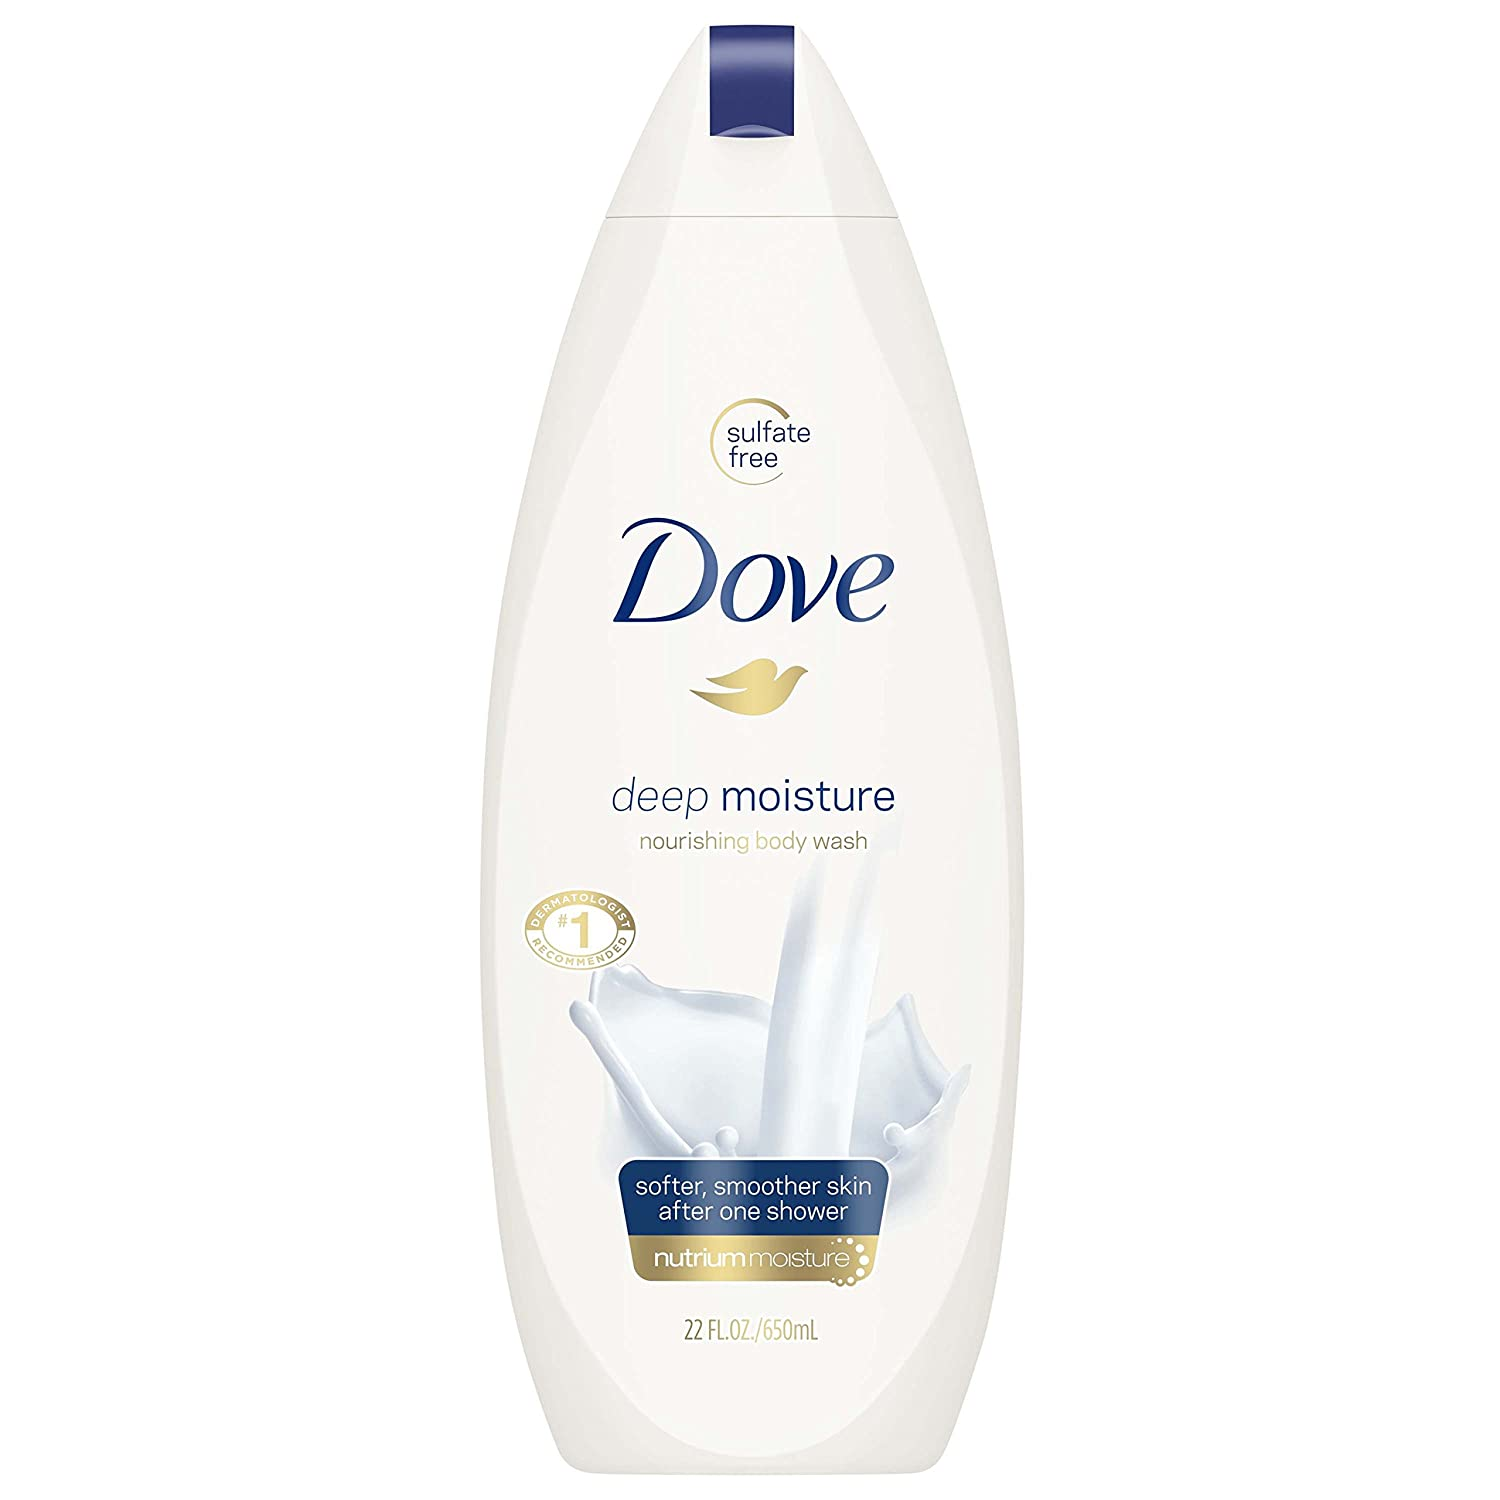 Dove Body Wash, Deep Moisture, 22 oz